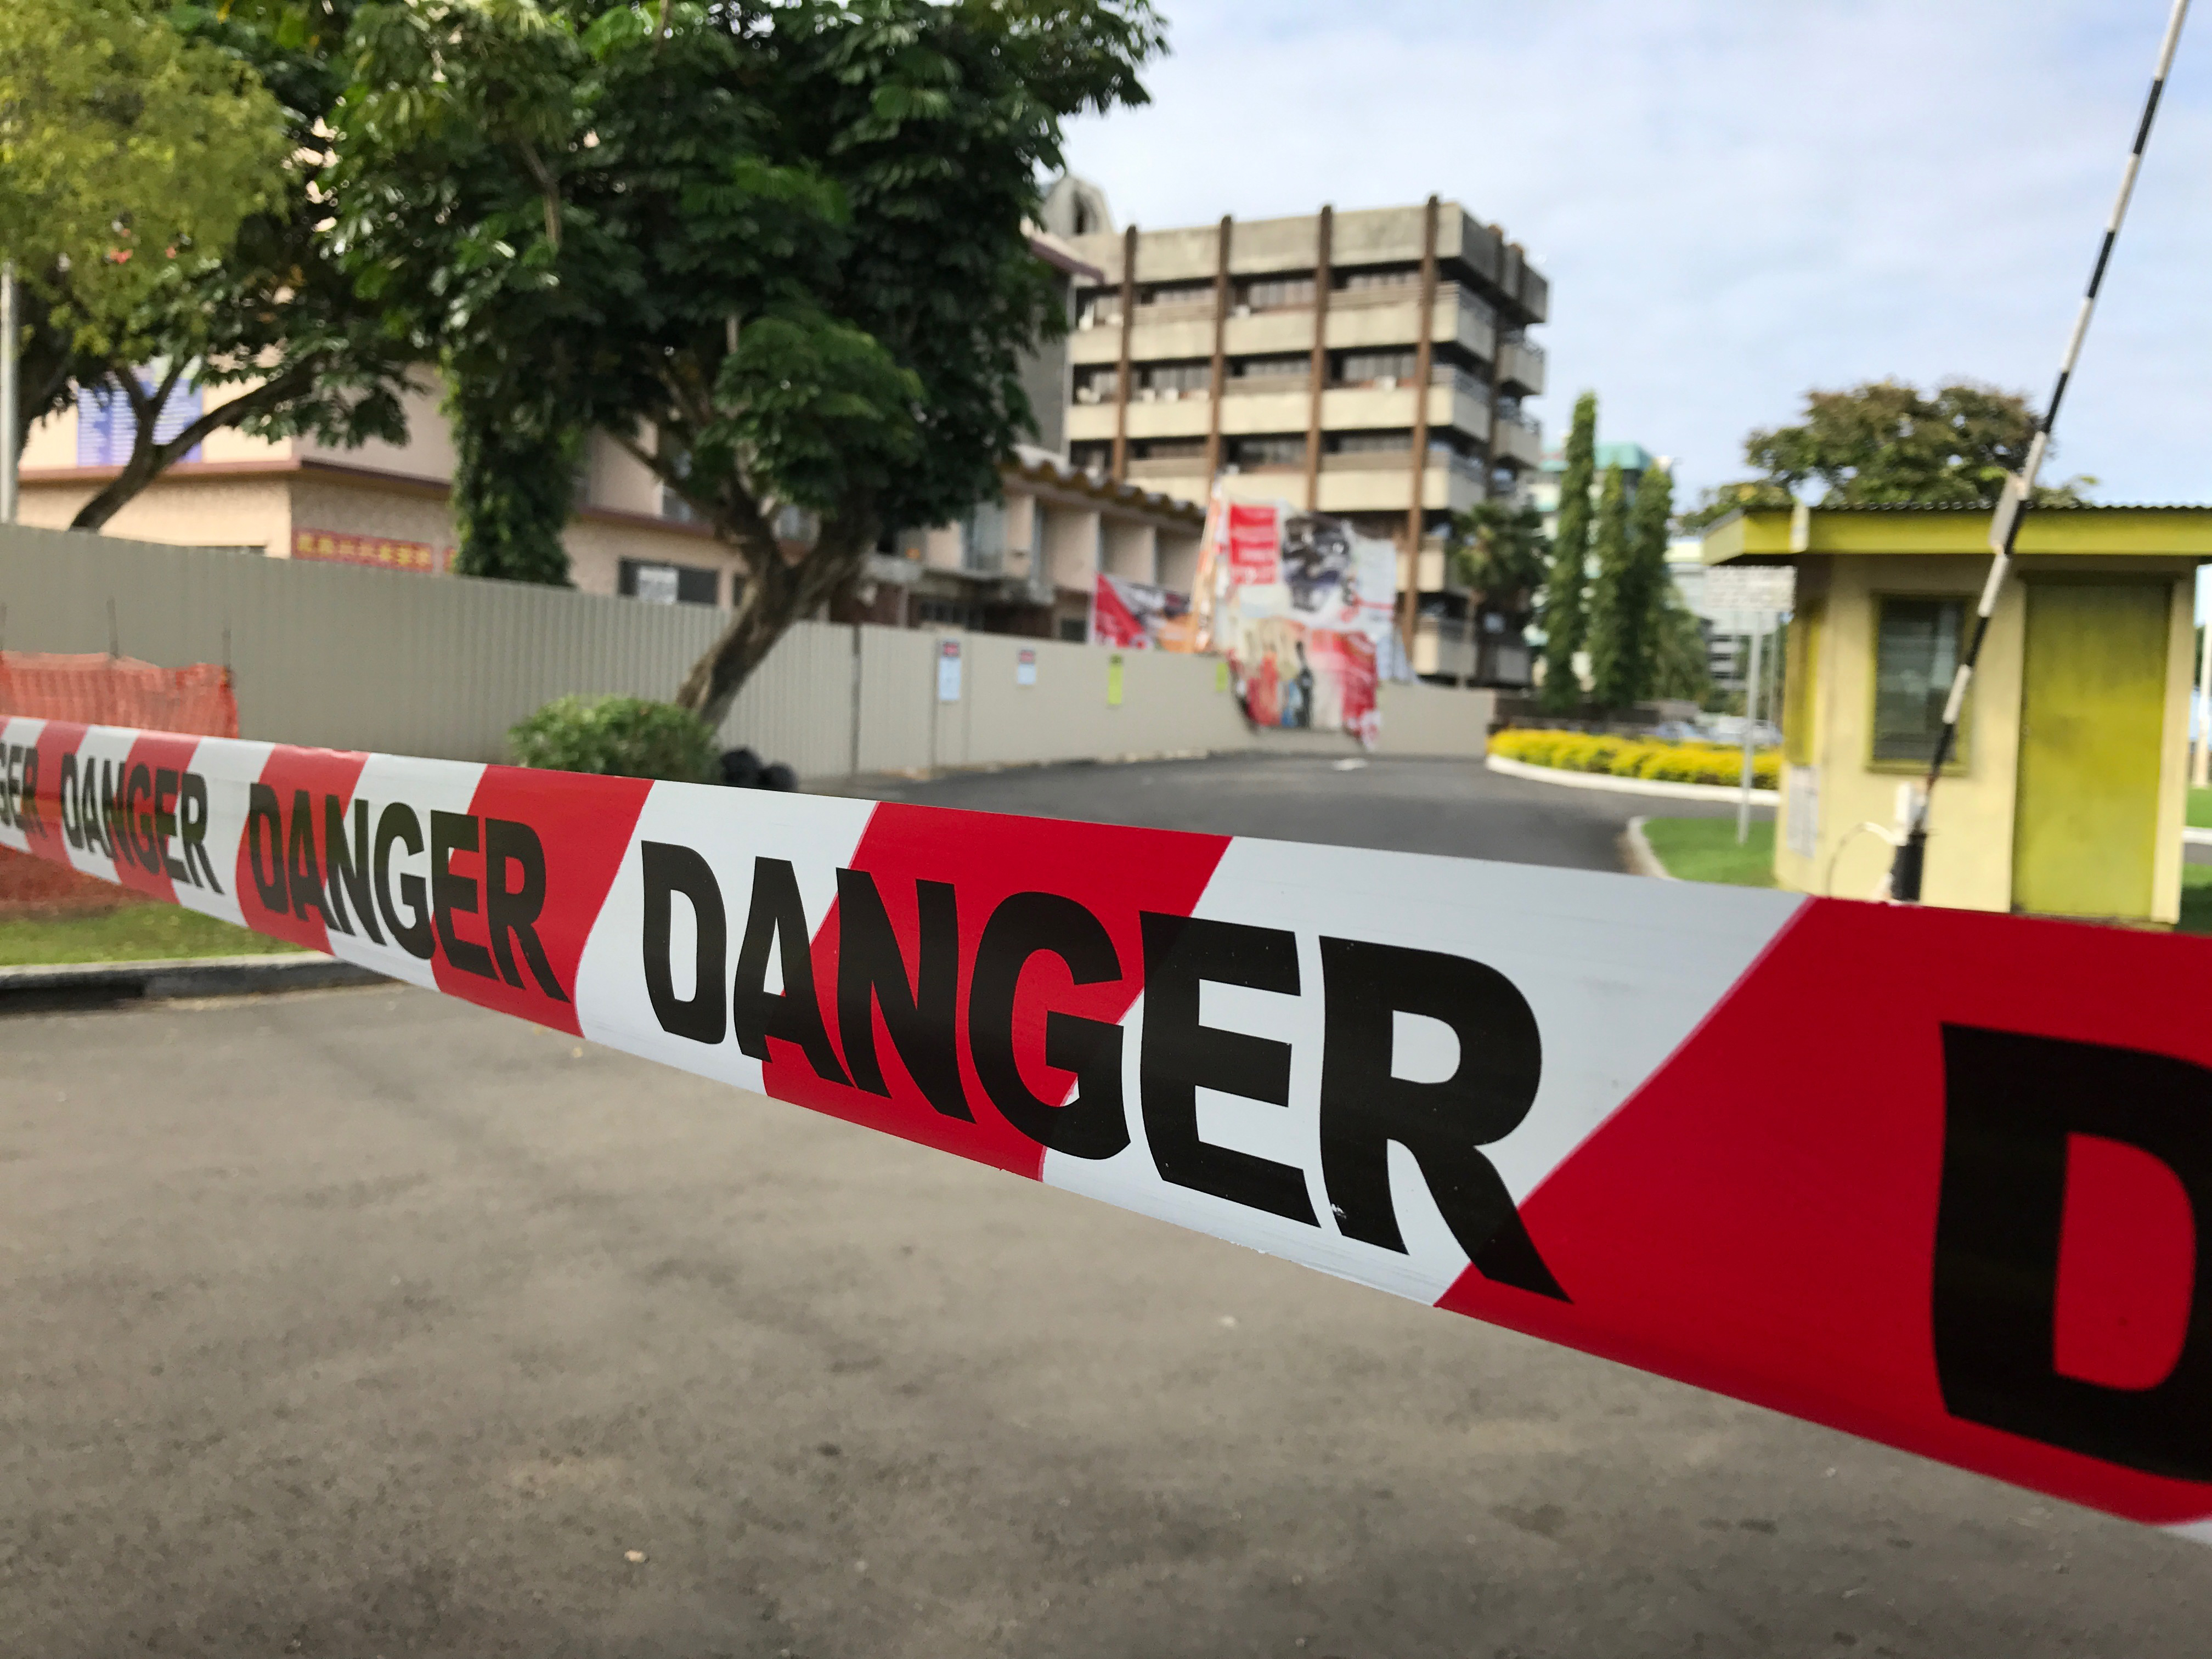 Th cordoned off danger area of the Civic Center from its entrance along Stinson Parade on Friday June 2nd, 2017. Photo:Ashna Kumar